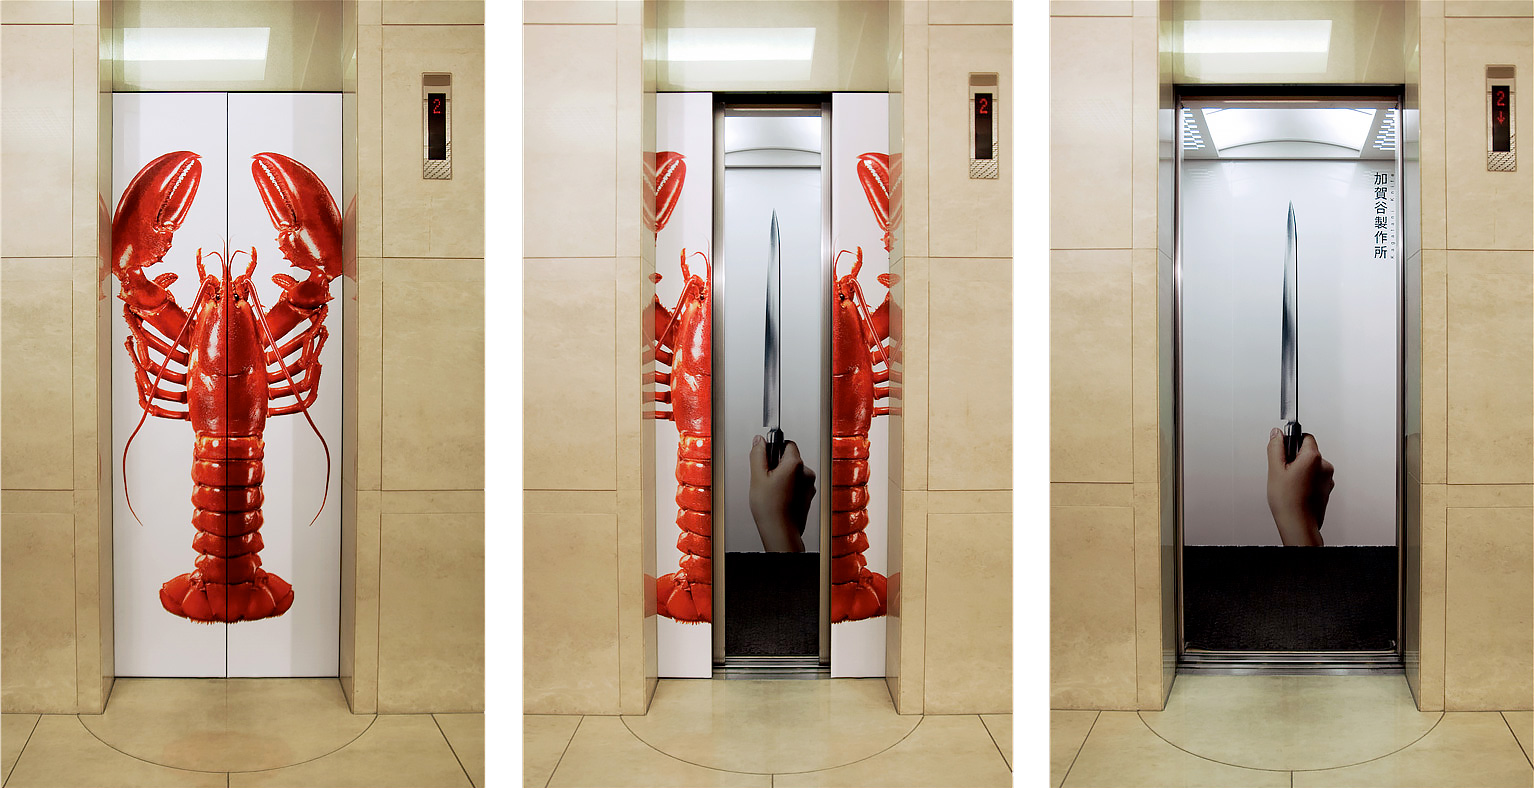 Lobster Knife Elevator